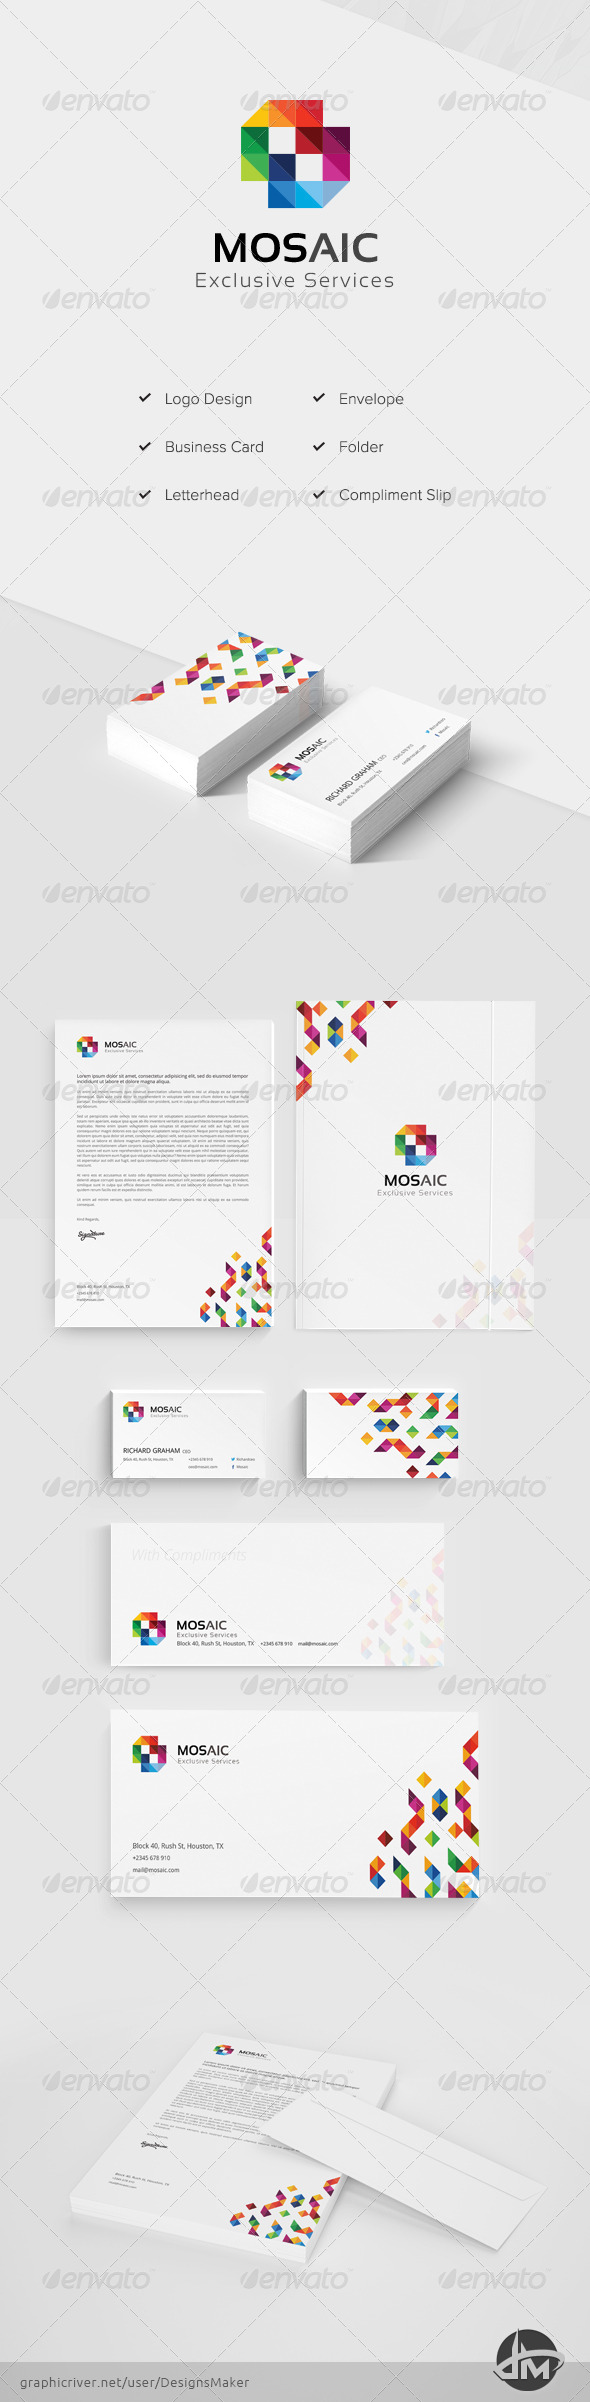 GraphicRiver Mosaic Stationery Pack 7046574